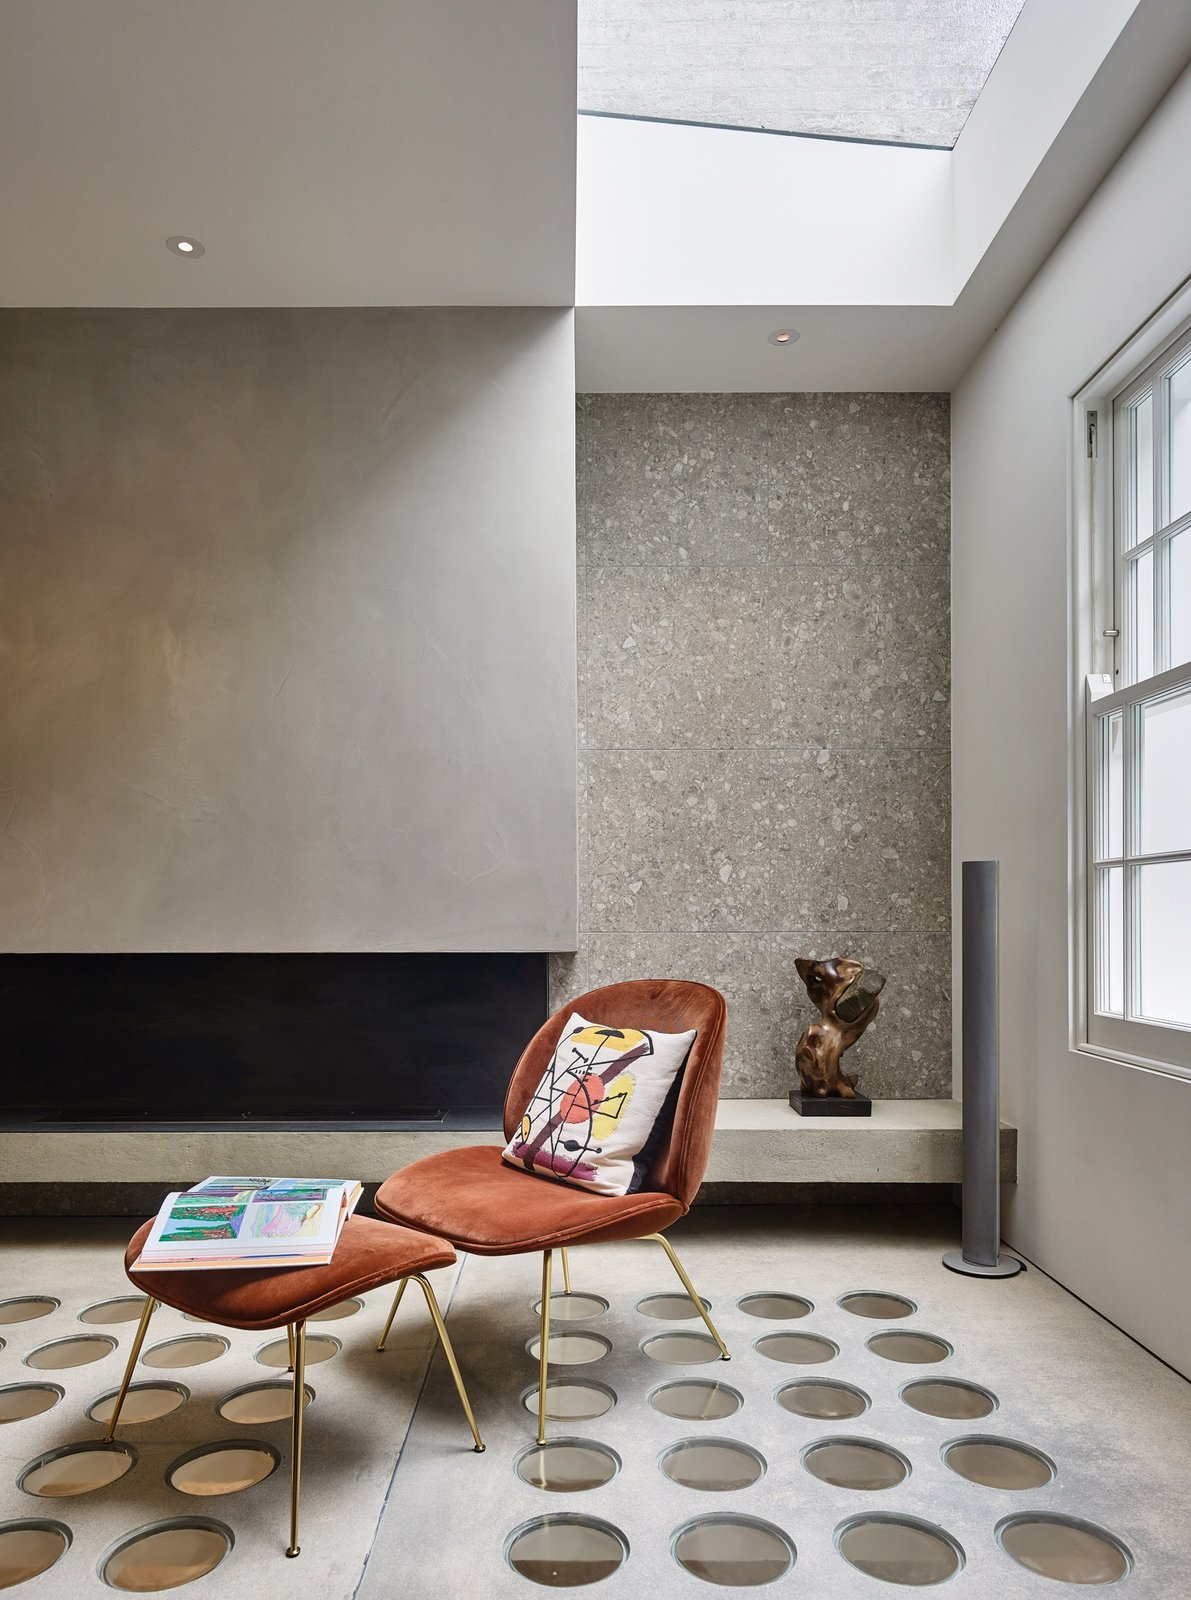 Photo 7 of 12 in Transparent Perforated Circles Bring Light and Movement to This London Terrace House